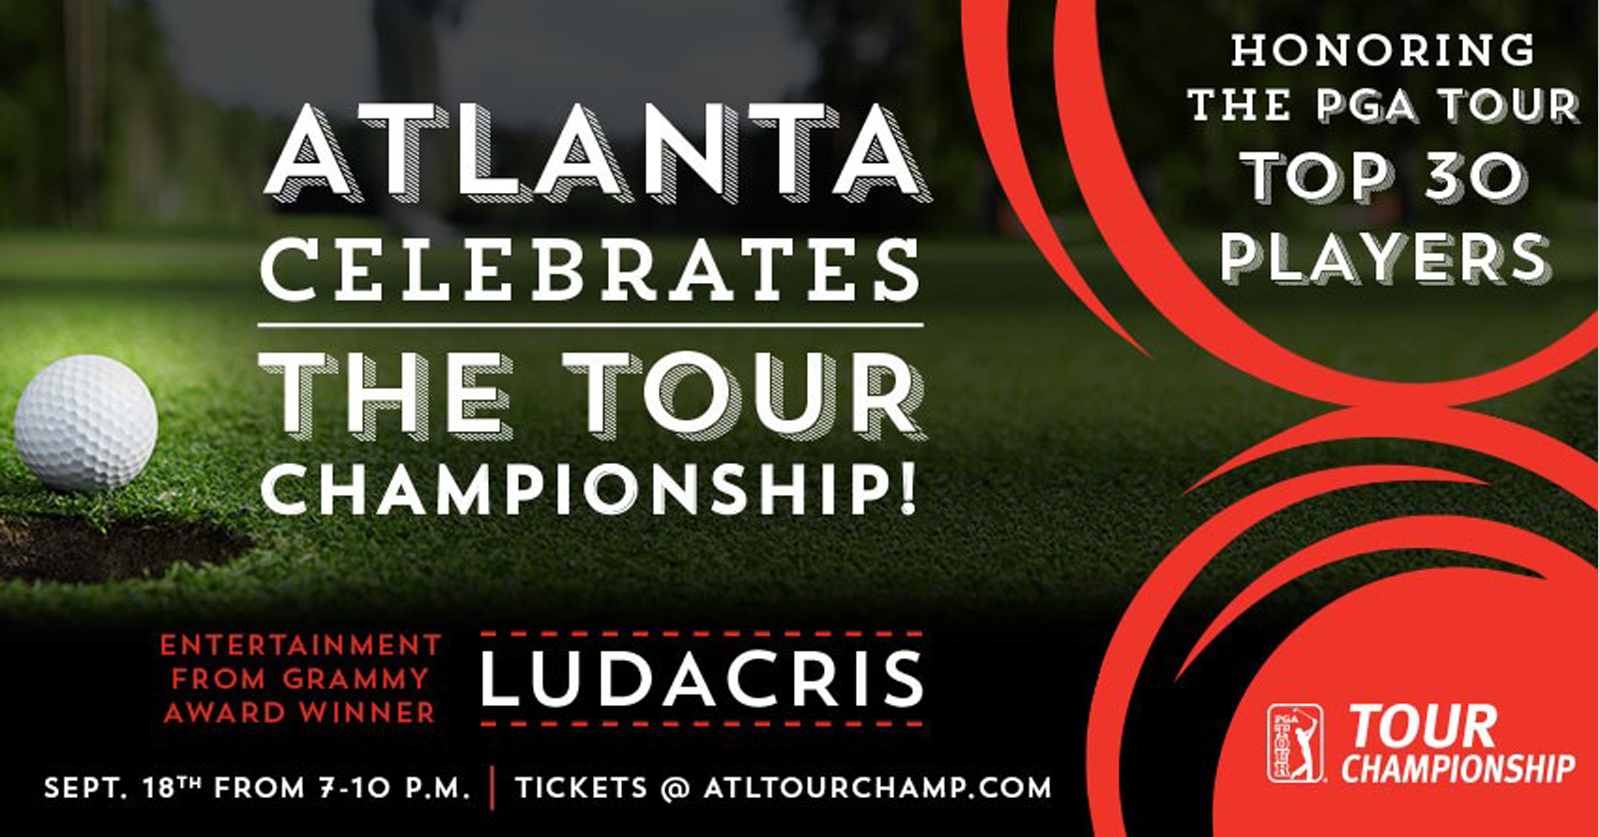 Atlanta Celebrates the TOUR Championship with Ludacris, a three-time Grammy award-winner. Image